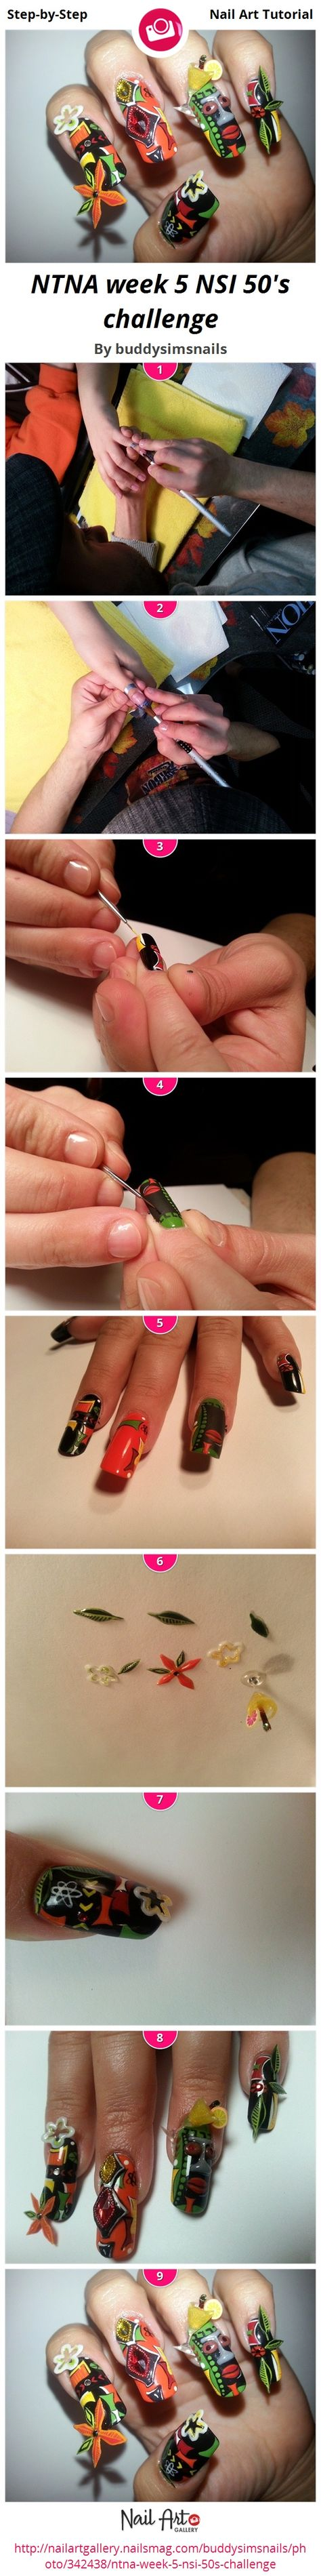 Cat in the Hat Nails! by leximartone - Nail Art Gallery Step-by-Step ...